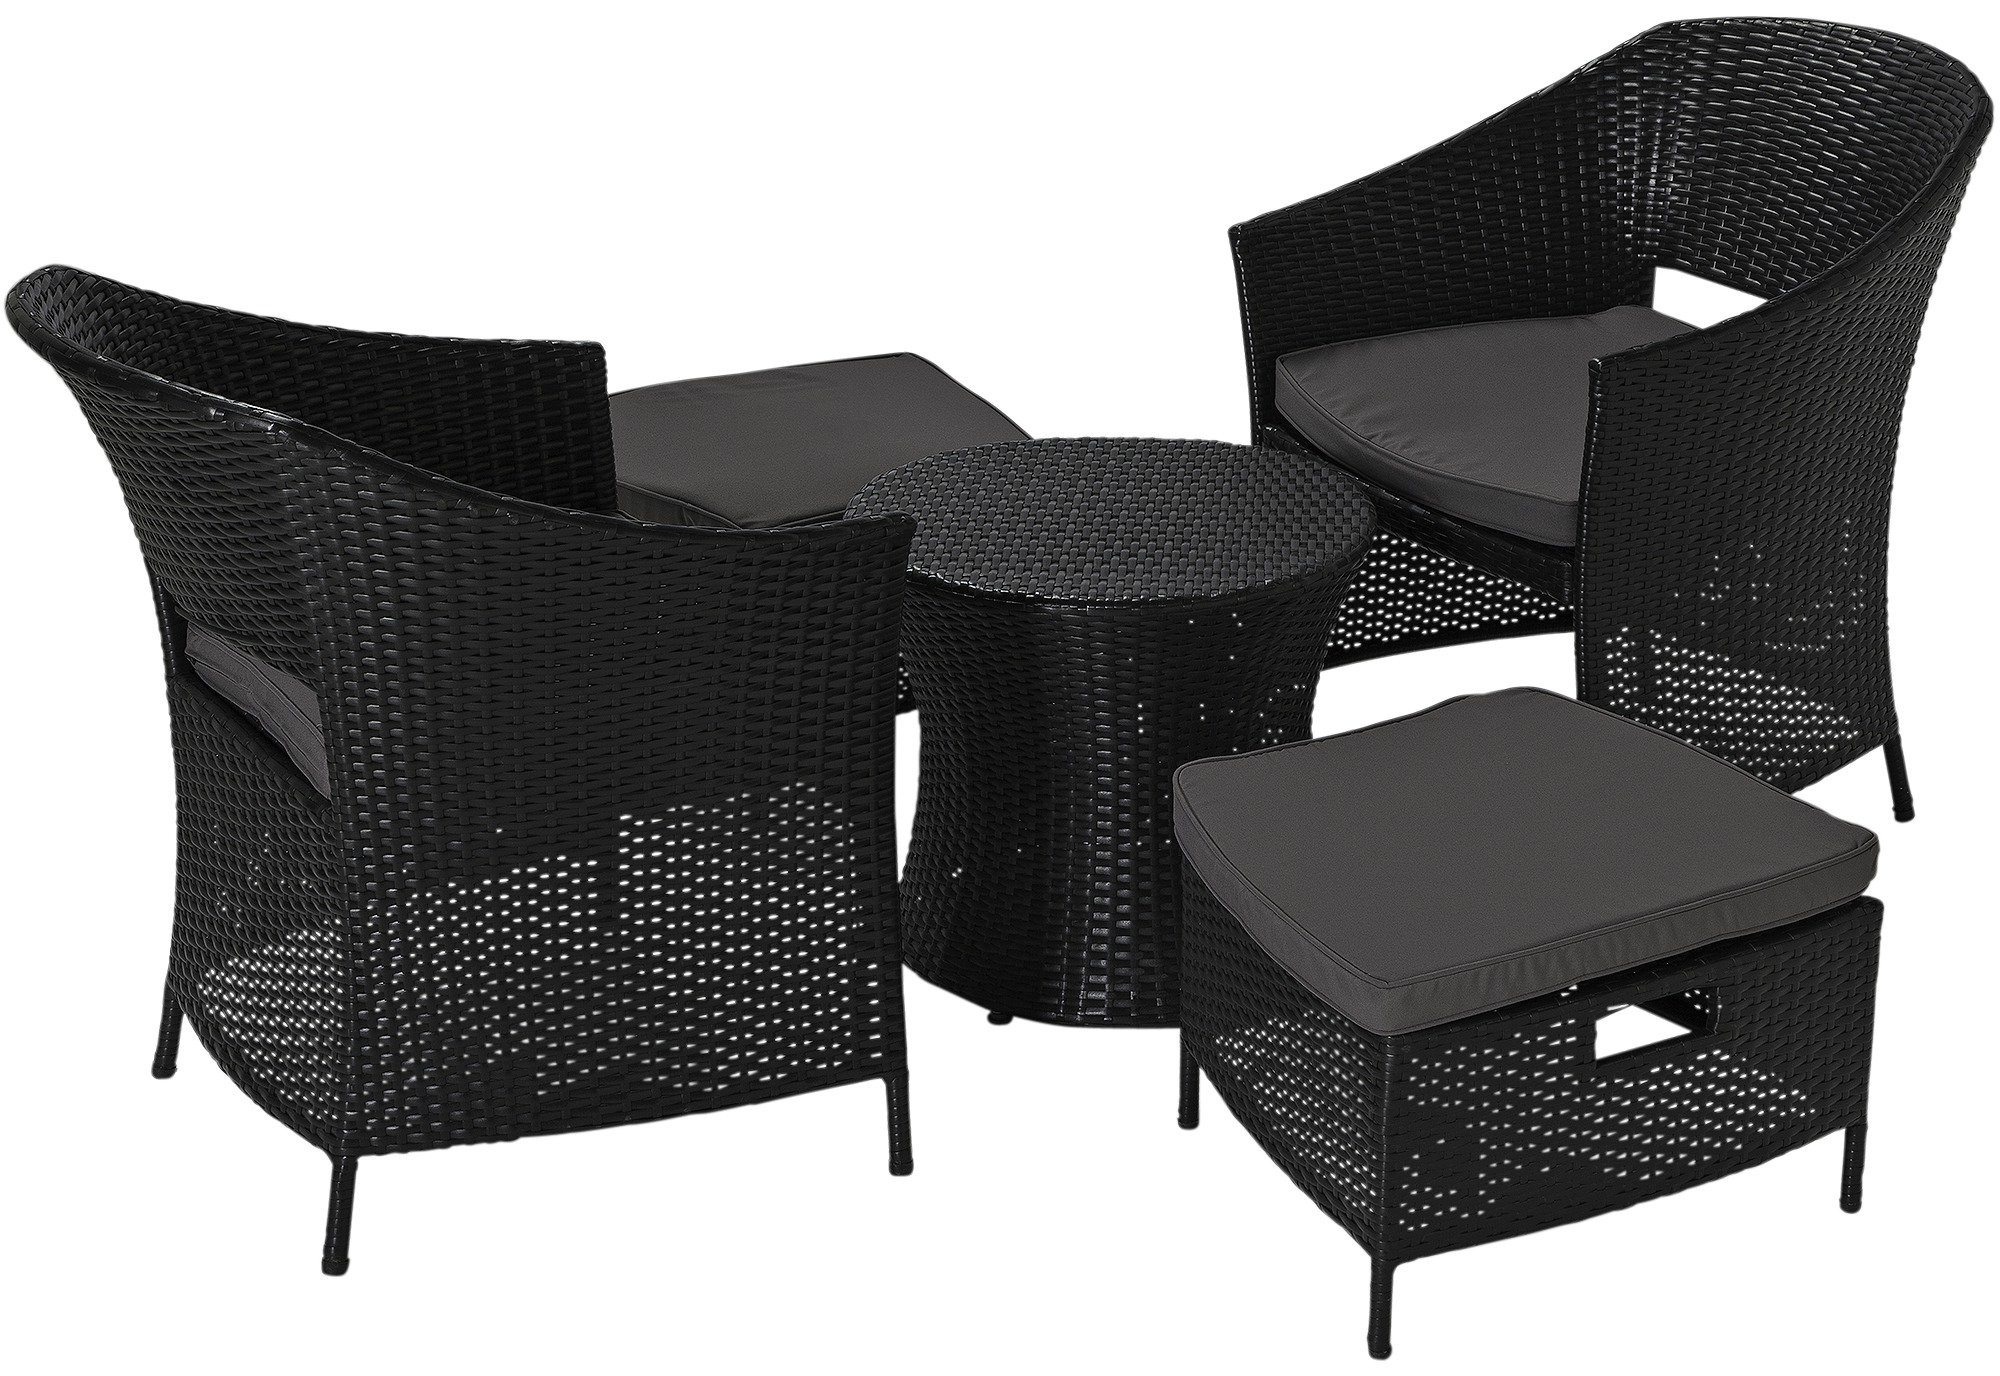 Rattan Effect Recliner Sofa Sale On Home Rattan Effect 2 Seater Egg Set With